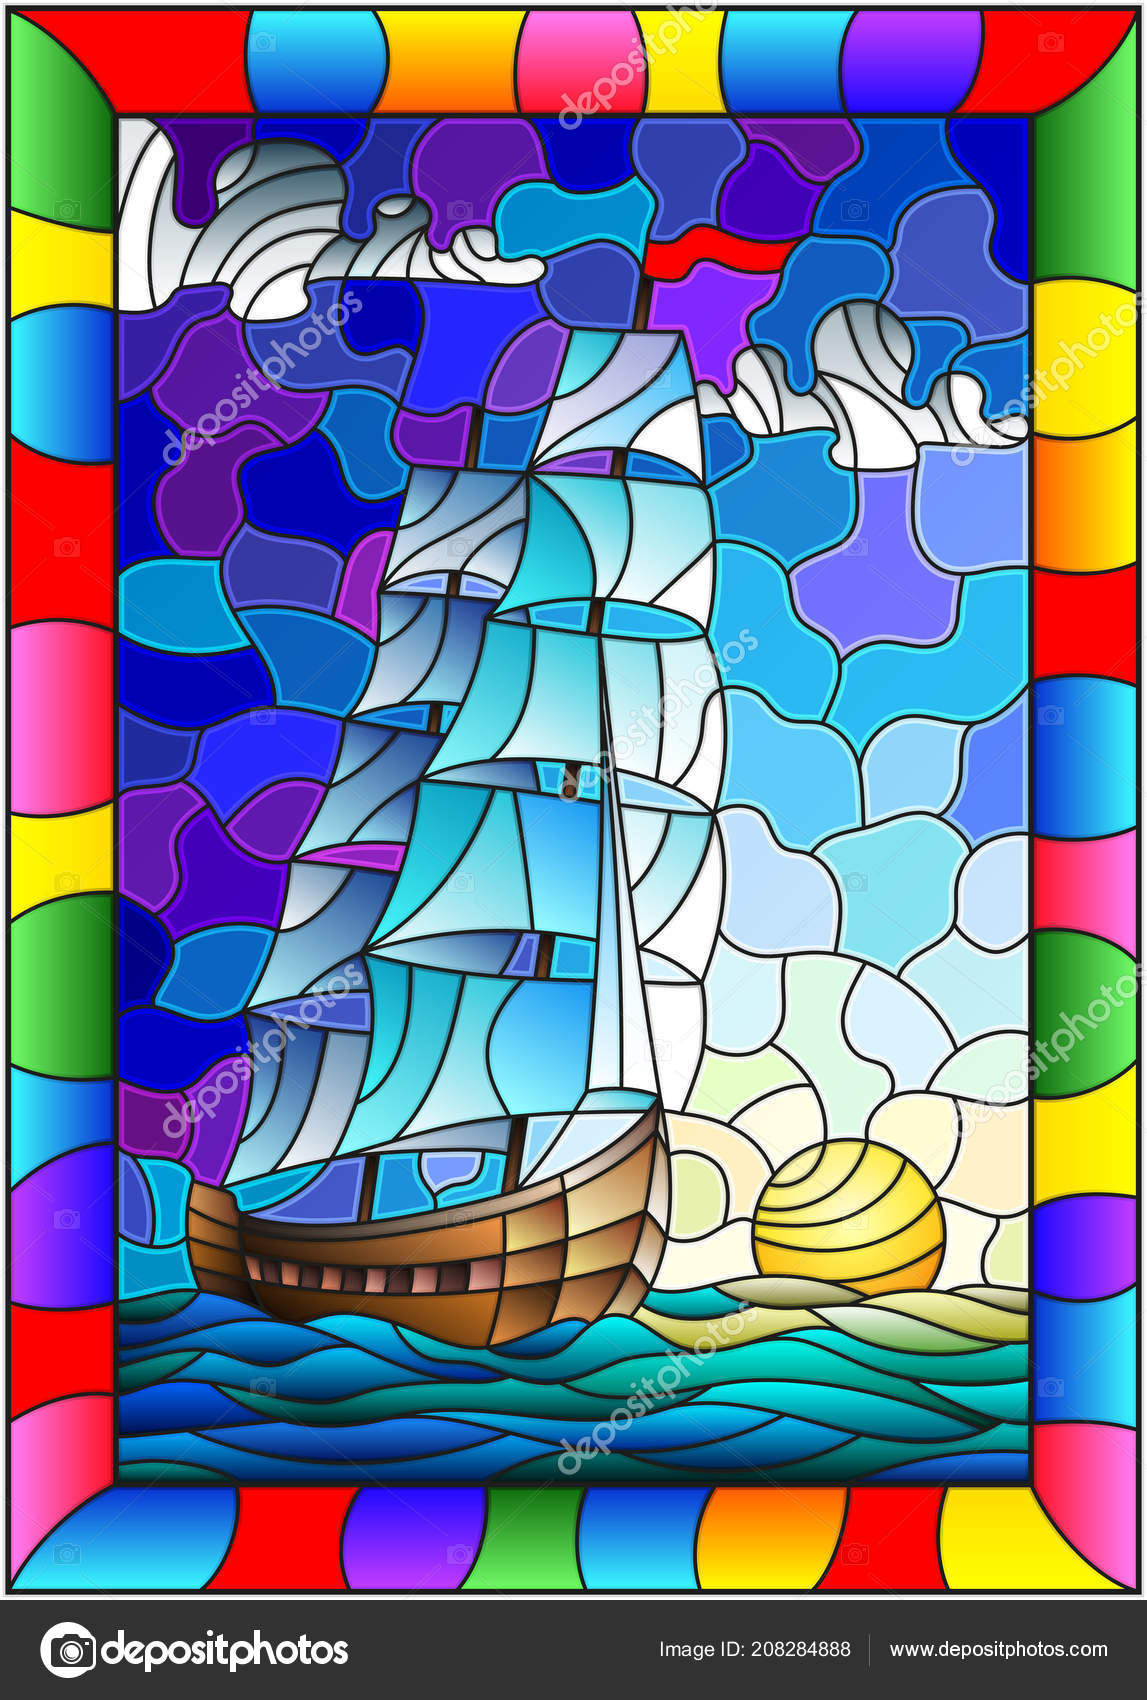 Illustration Stained Glass Style Old Ship Sailing White Sails Sea ...